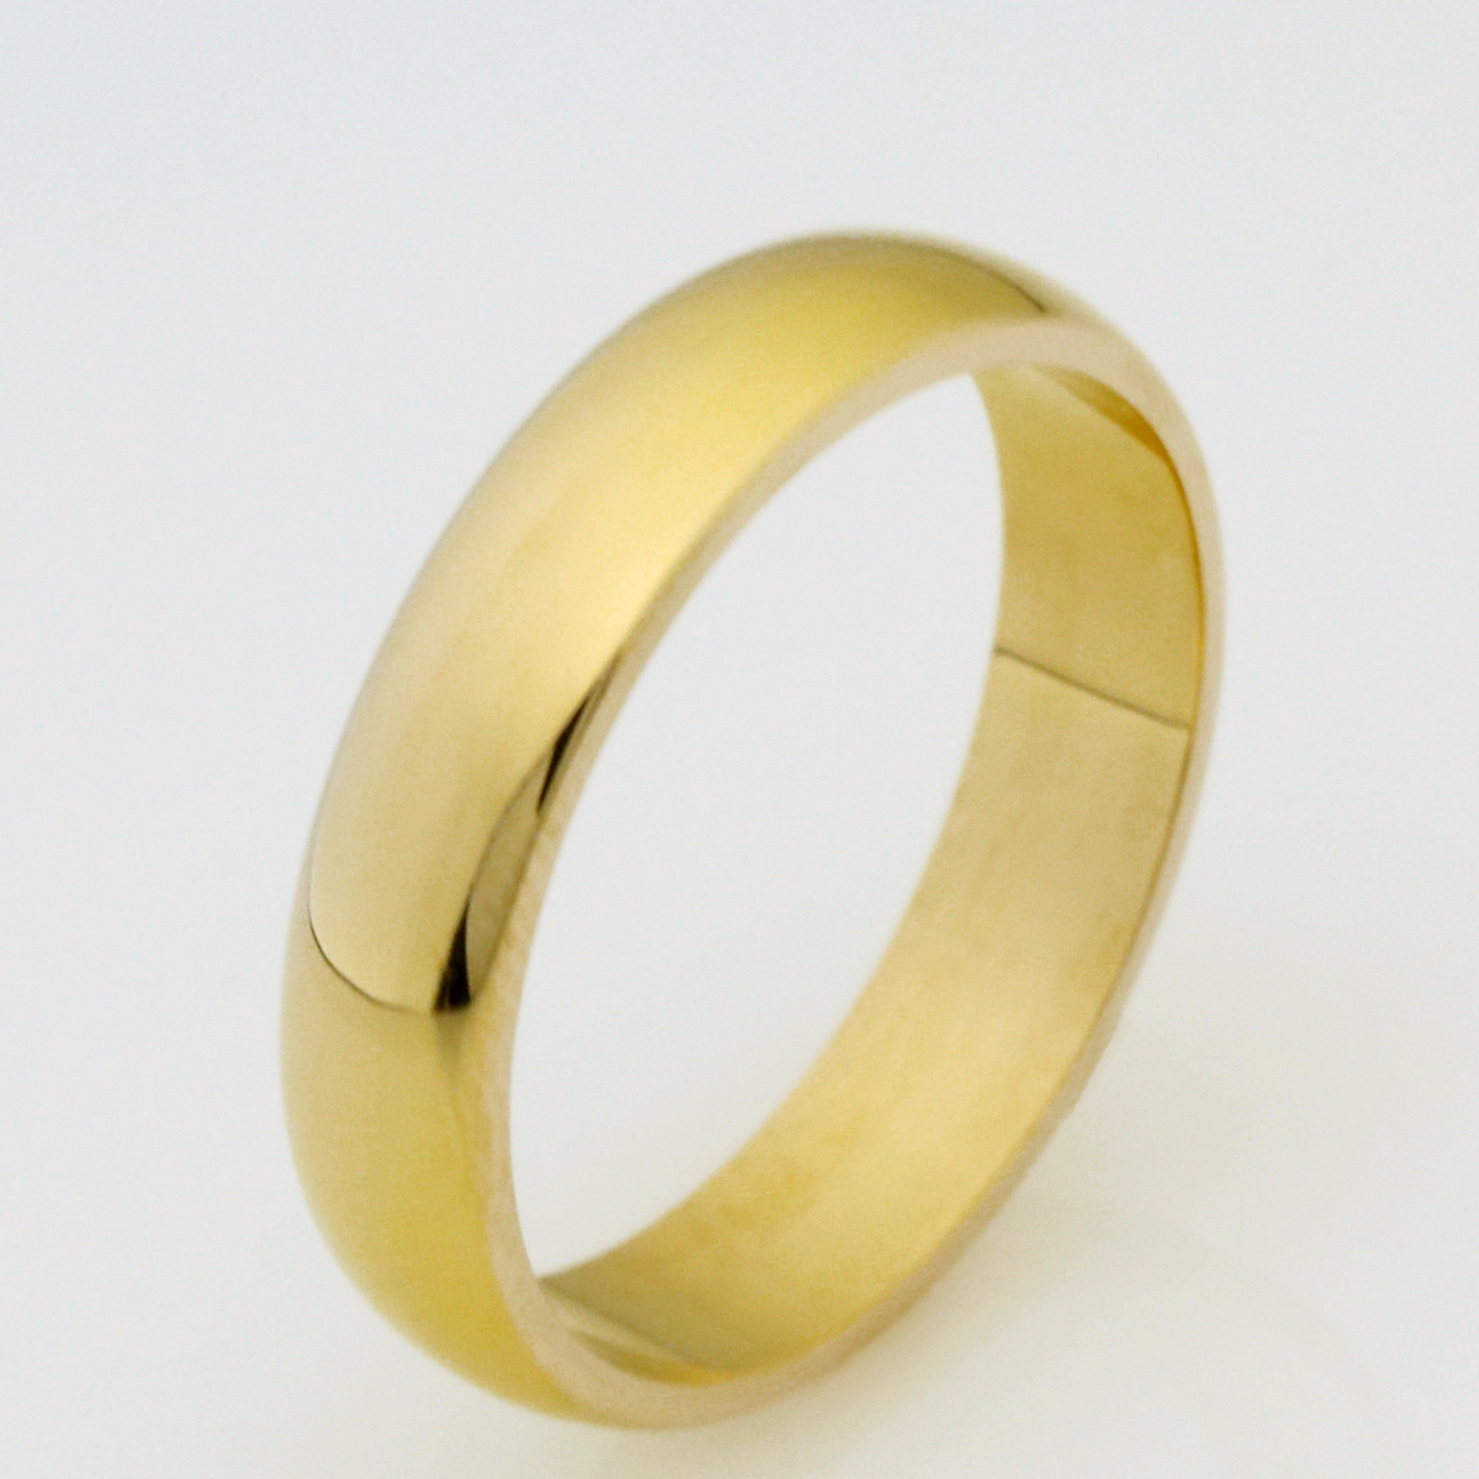 Ladies handmade 18ct yellow gold wedding ring